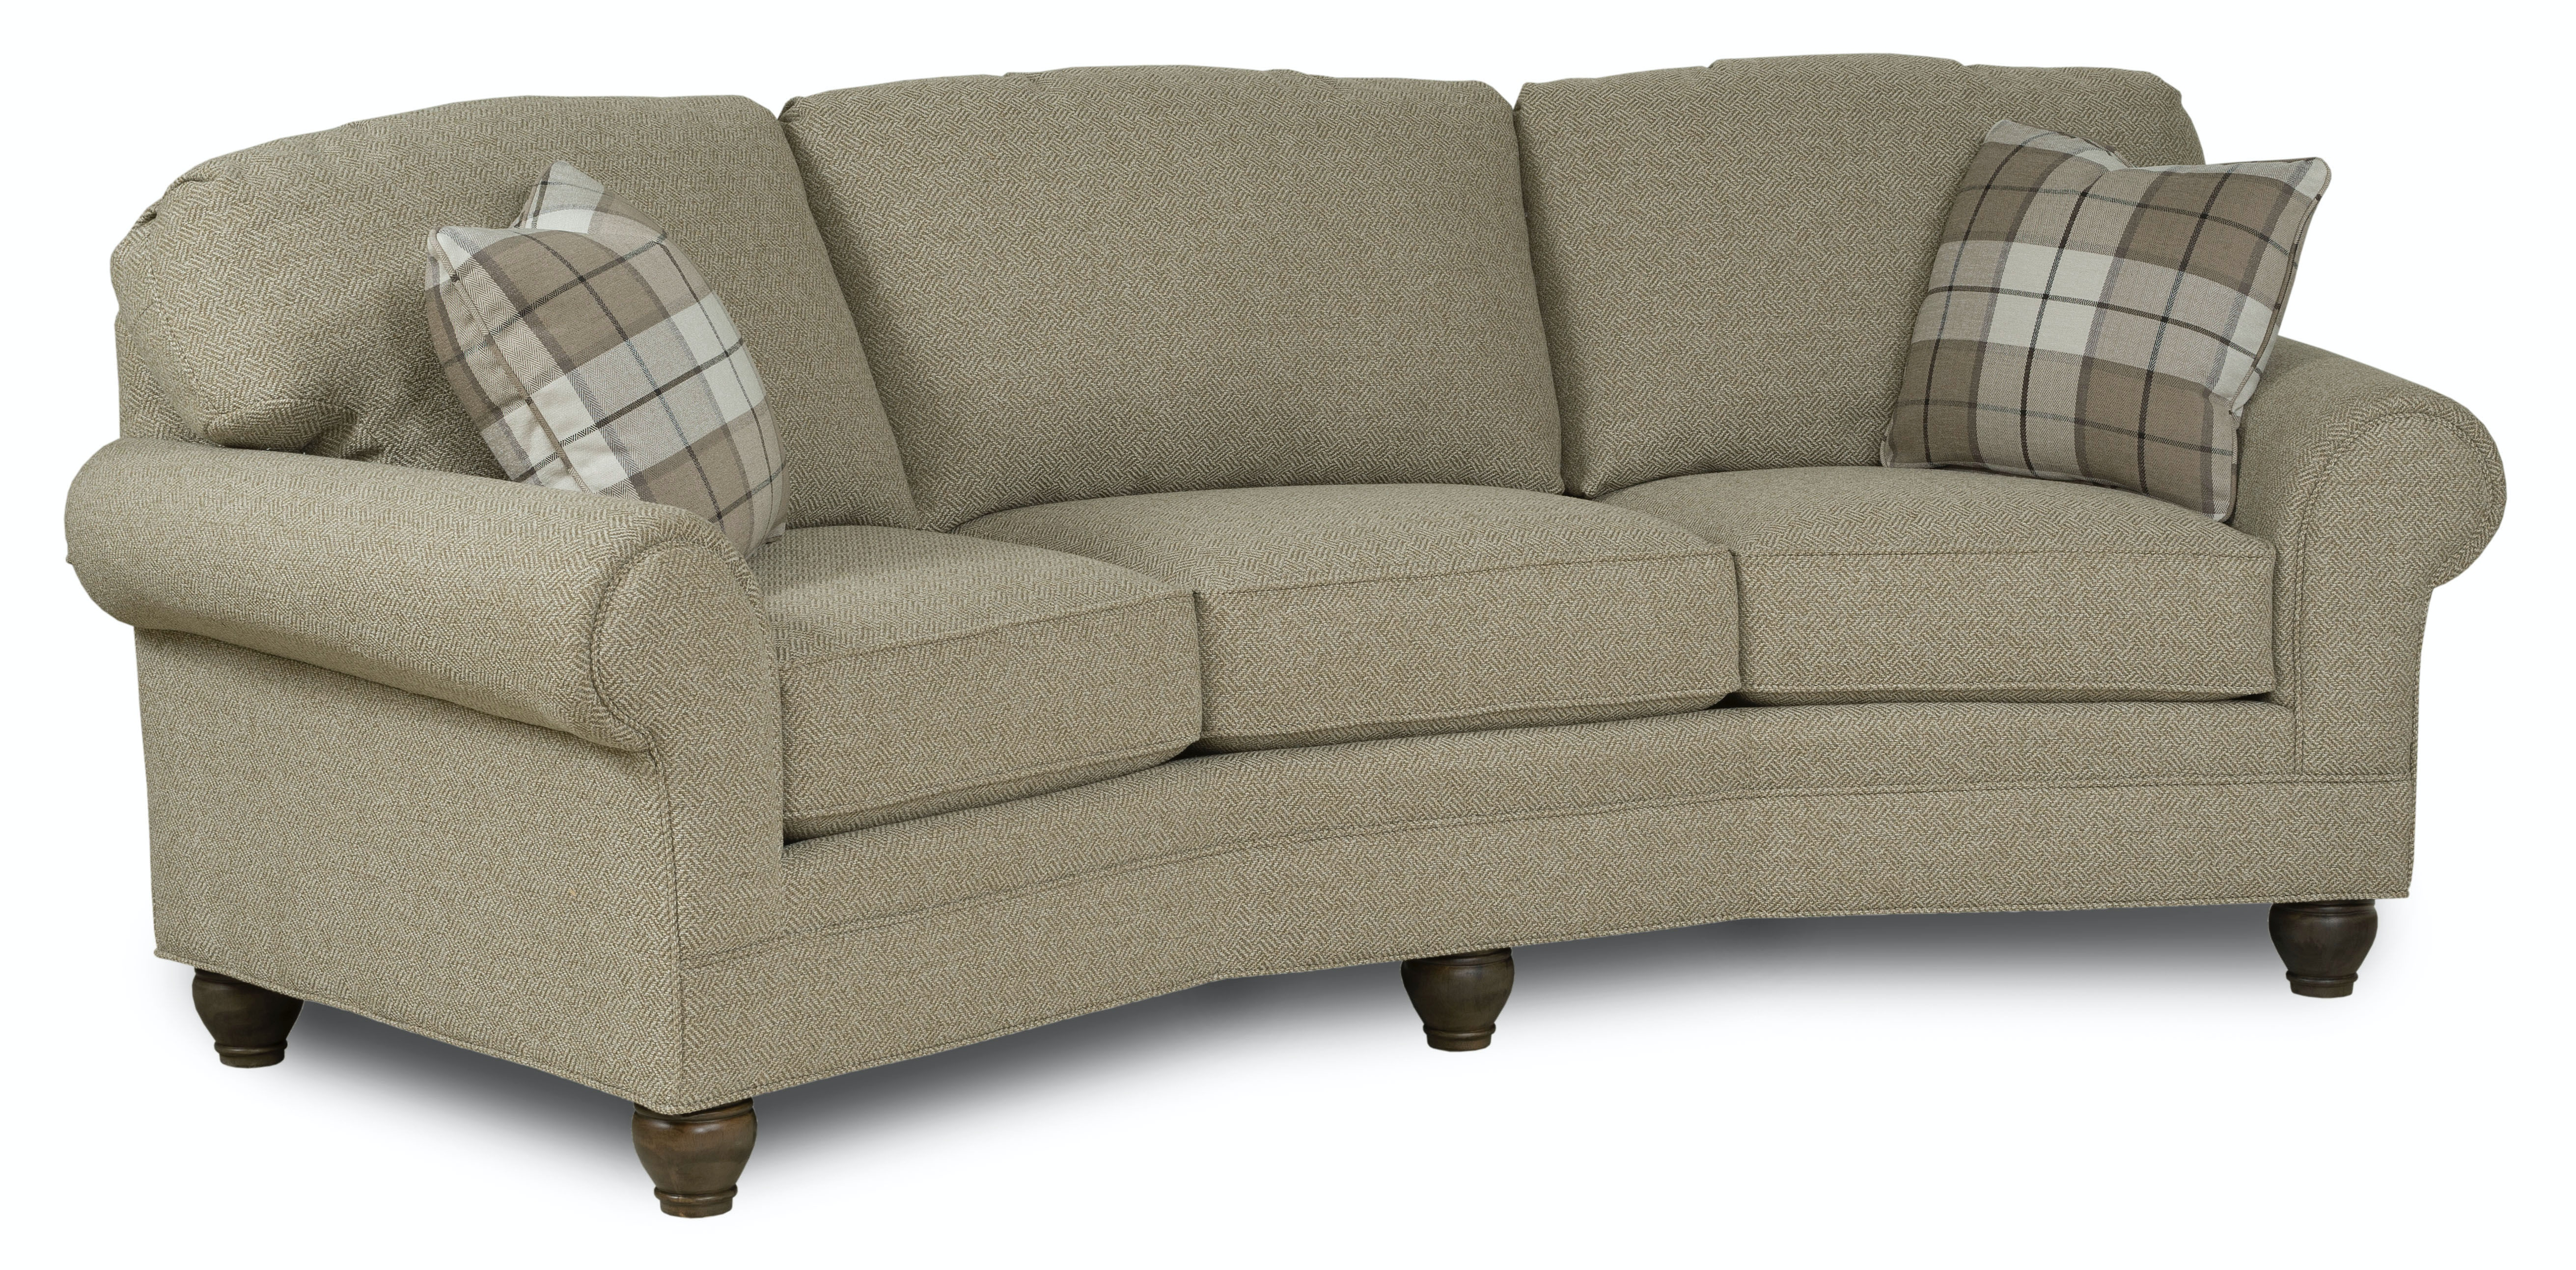 Fairfield Chair Company Crosby Corner Sofa 3768 57